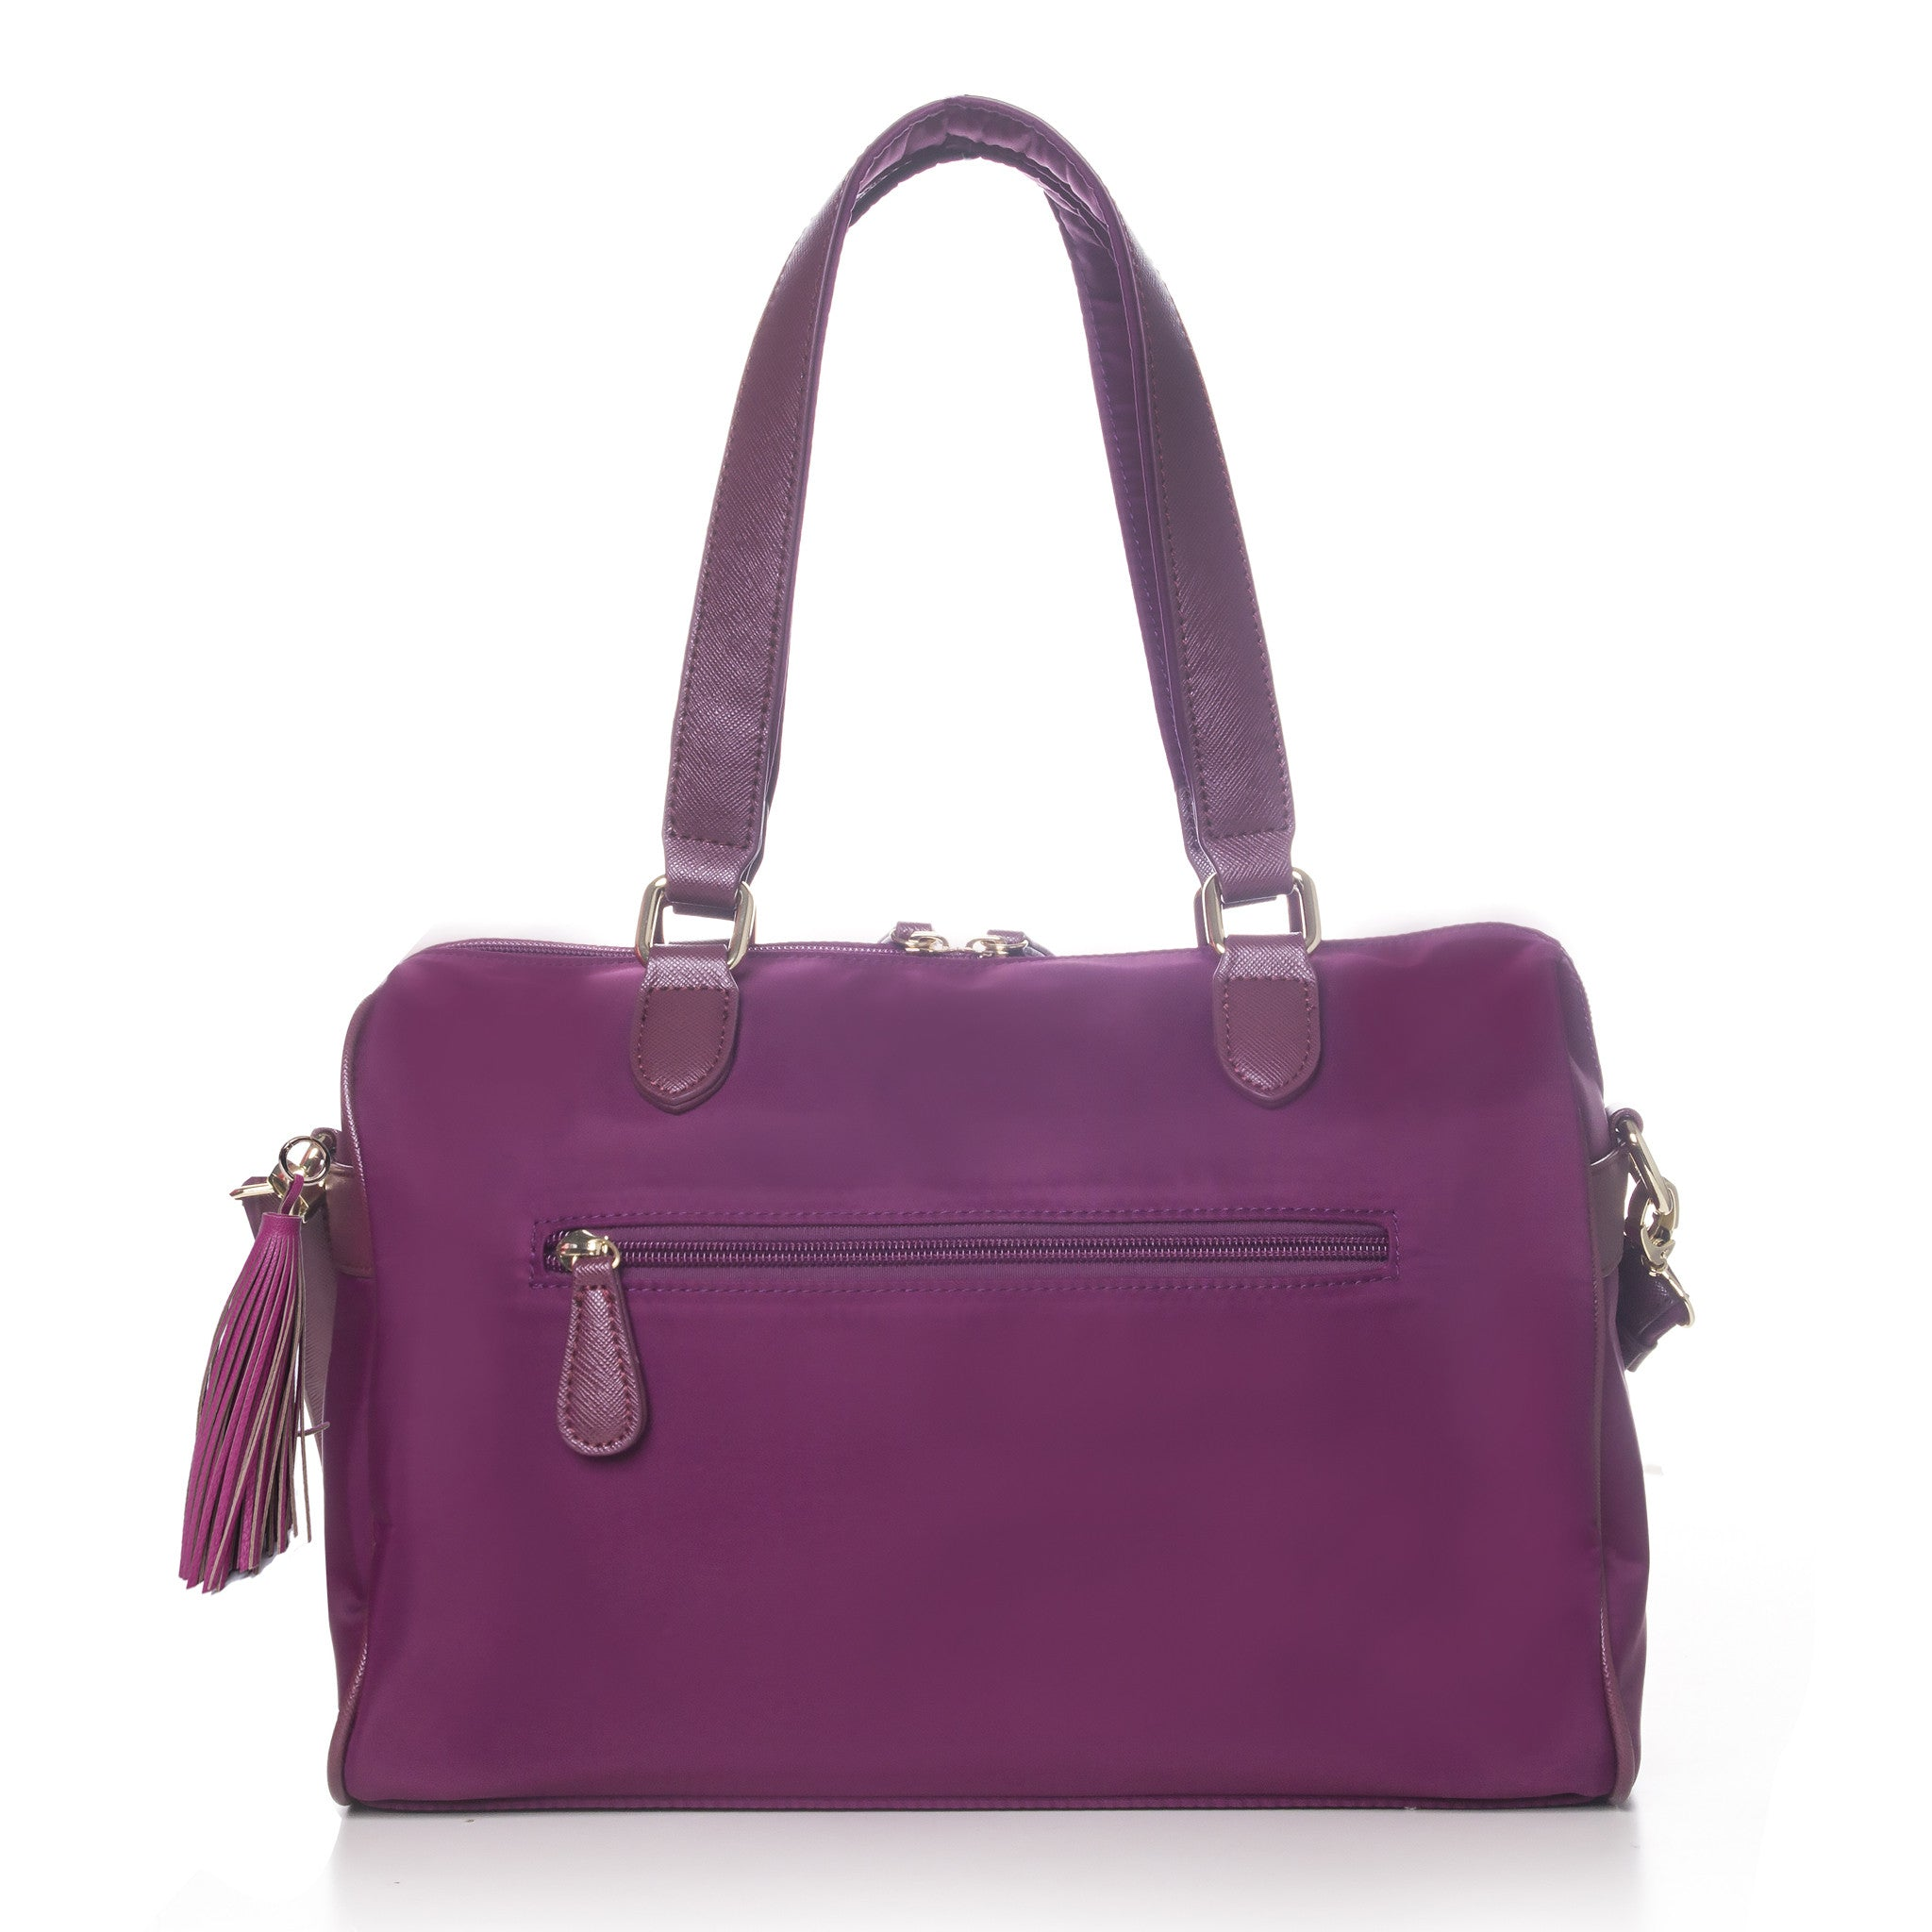 On the Go 3-in-1 Bag by DAZZ - Titanium Grey/Brilliant Black/Majestic Magenta/Lipstick Red/Electric Teal